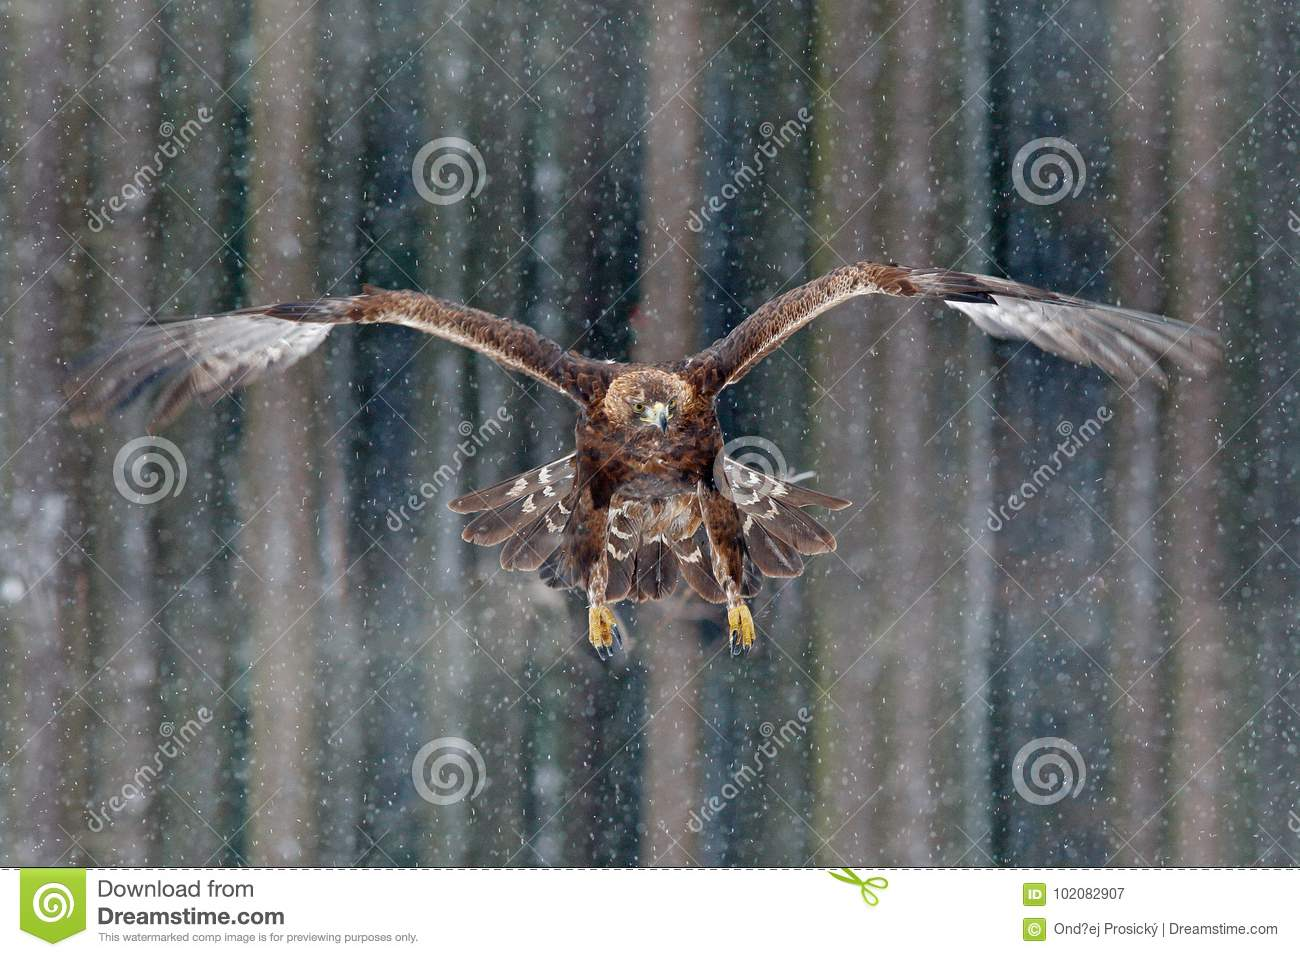 Flying birds of prey golden eagle with large wingspan, photo with snow flake during winter, dark forest in background. Wildlife sc